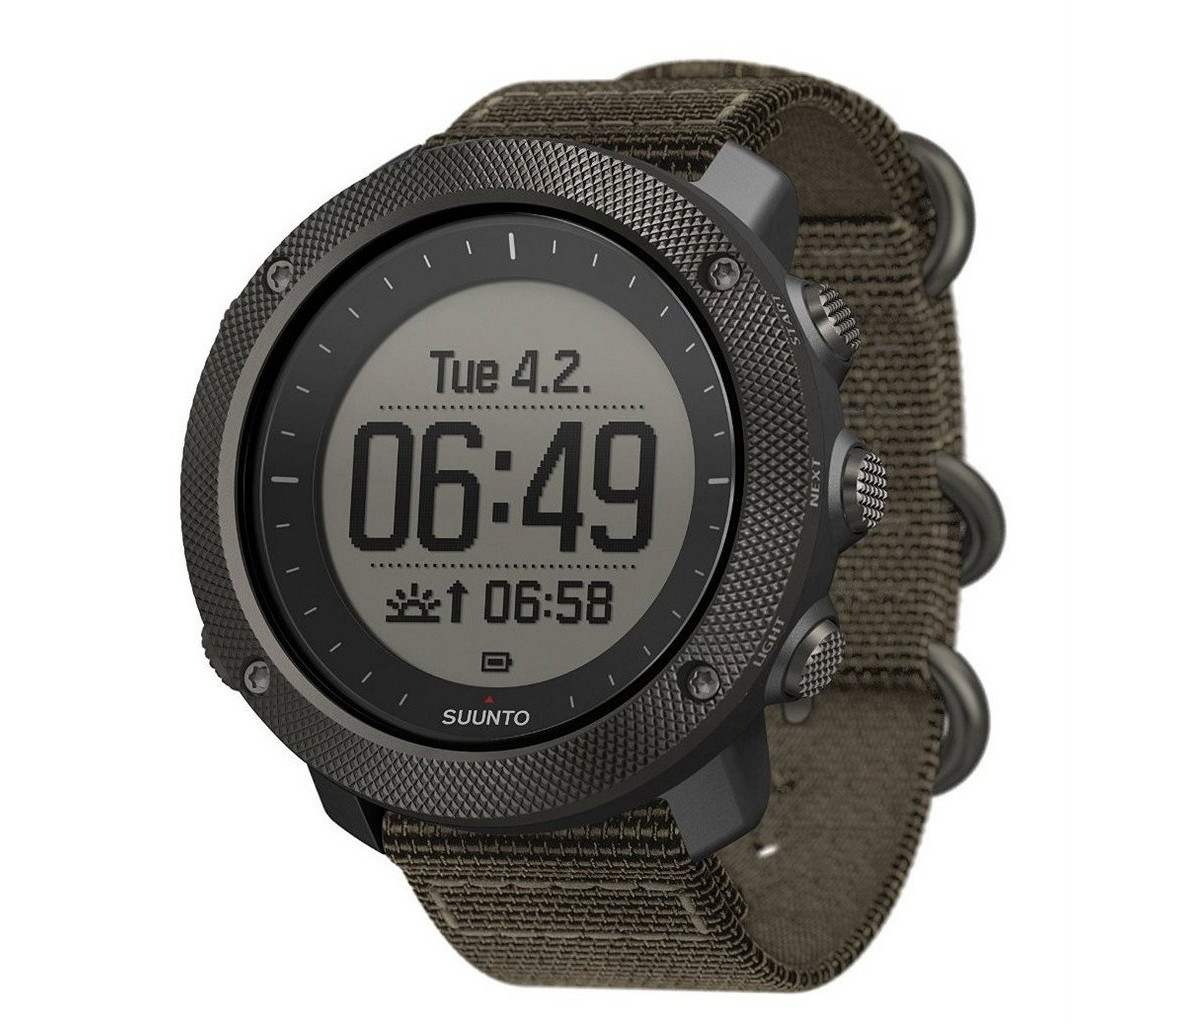 070c1bf94d2 Best Military Watches of 2019 - The Expert Selection - Best Hiking